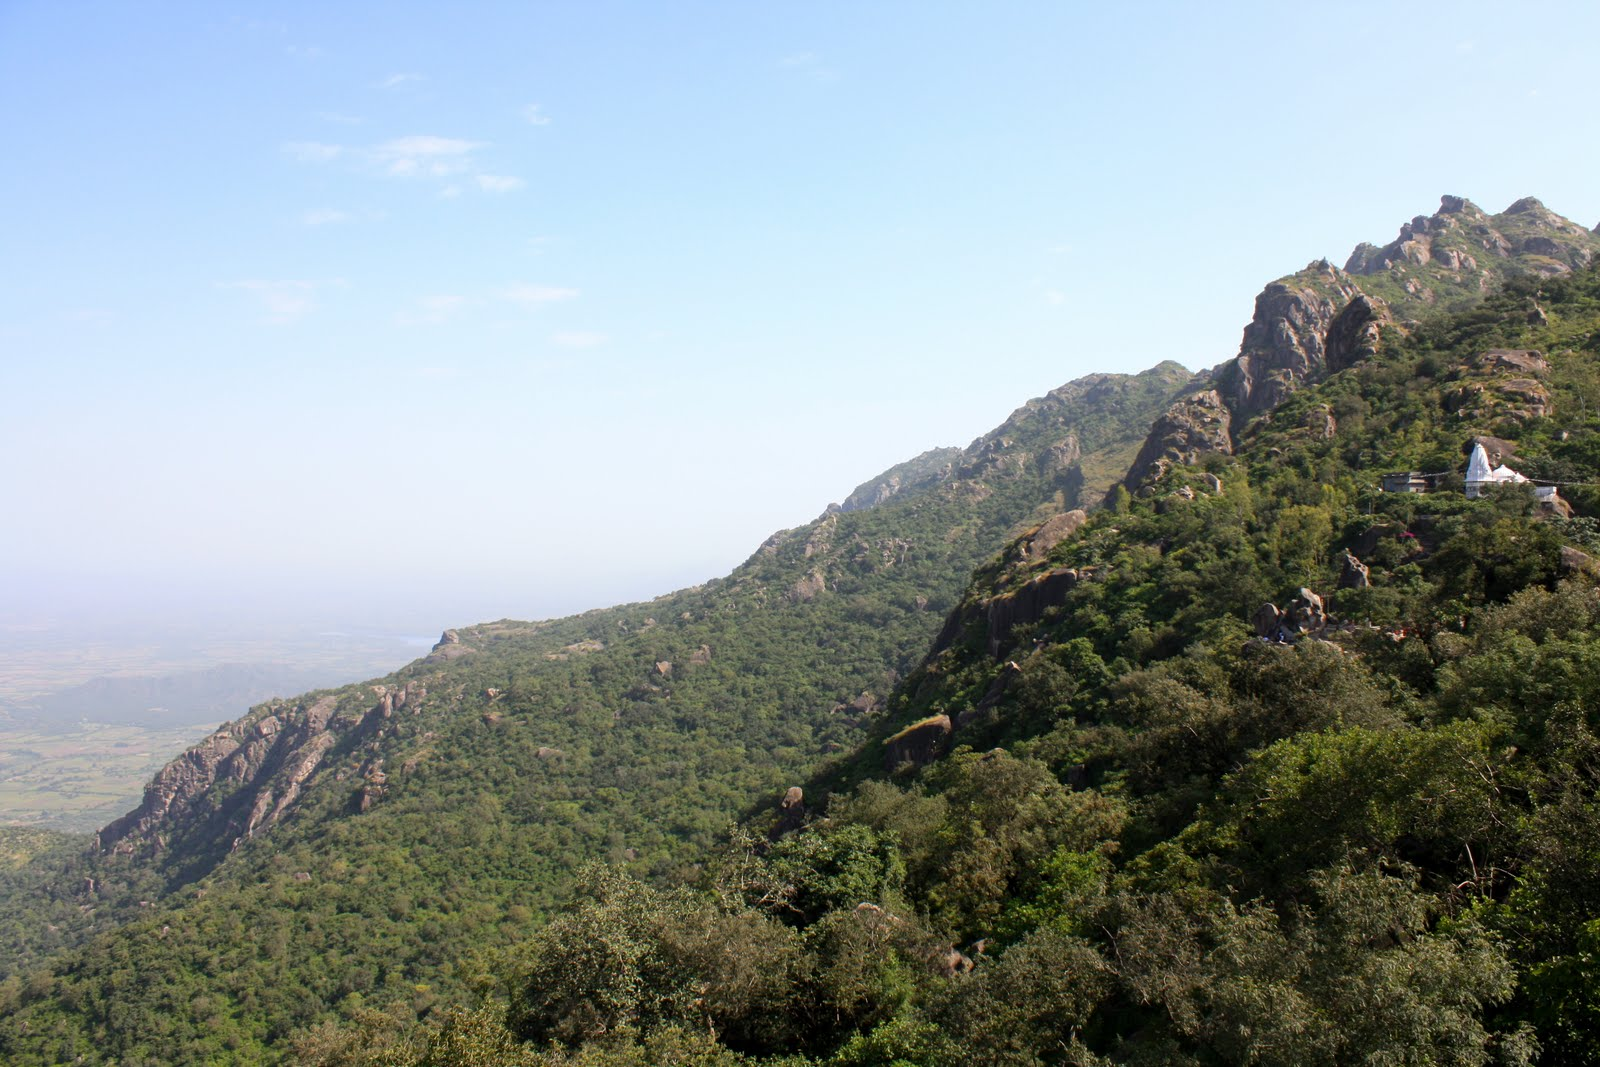 Honeymoon Point - Mount Abu